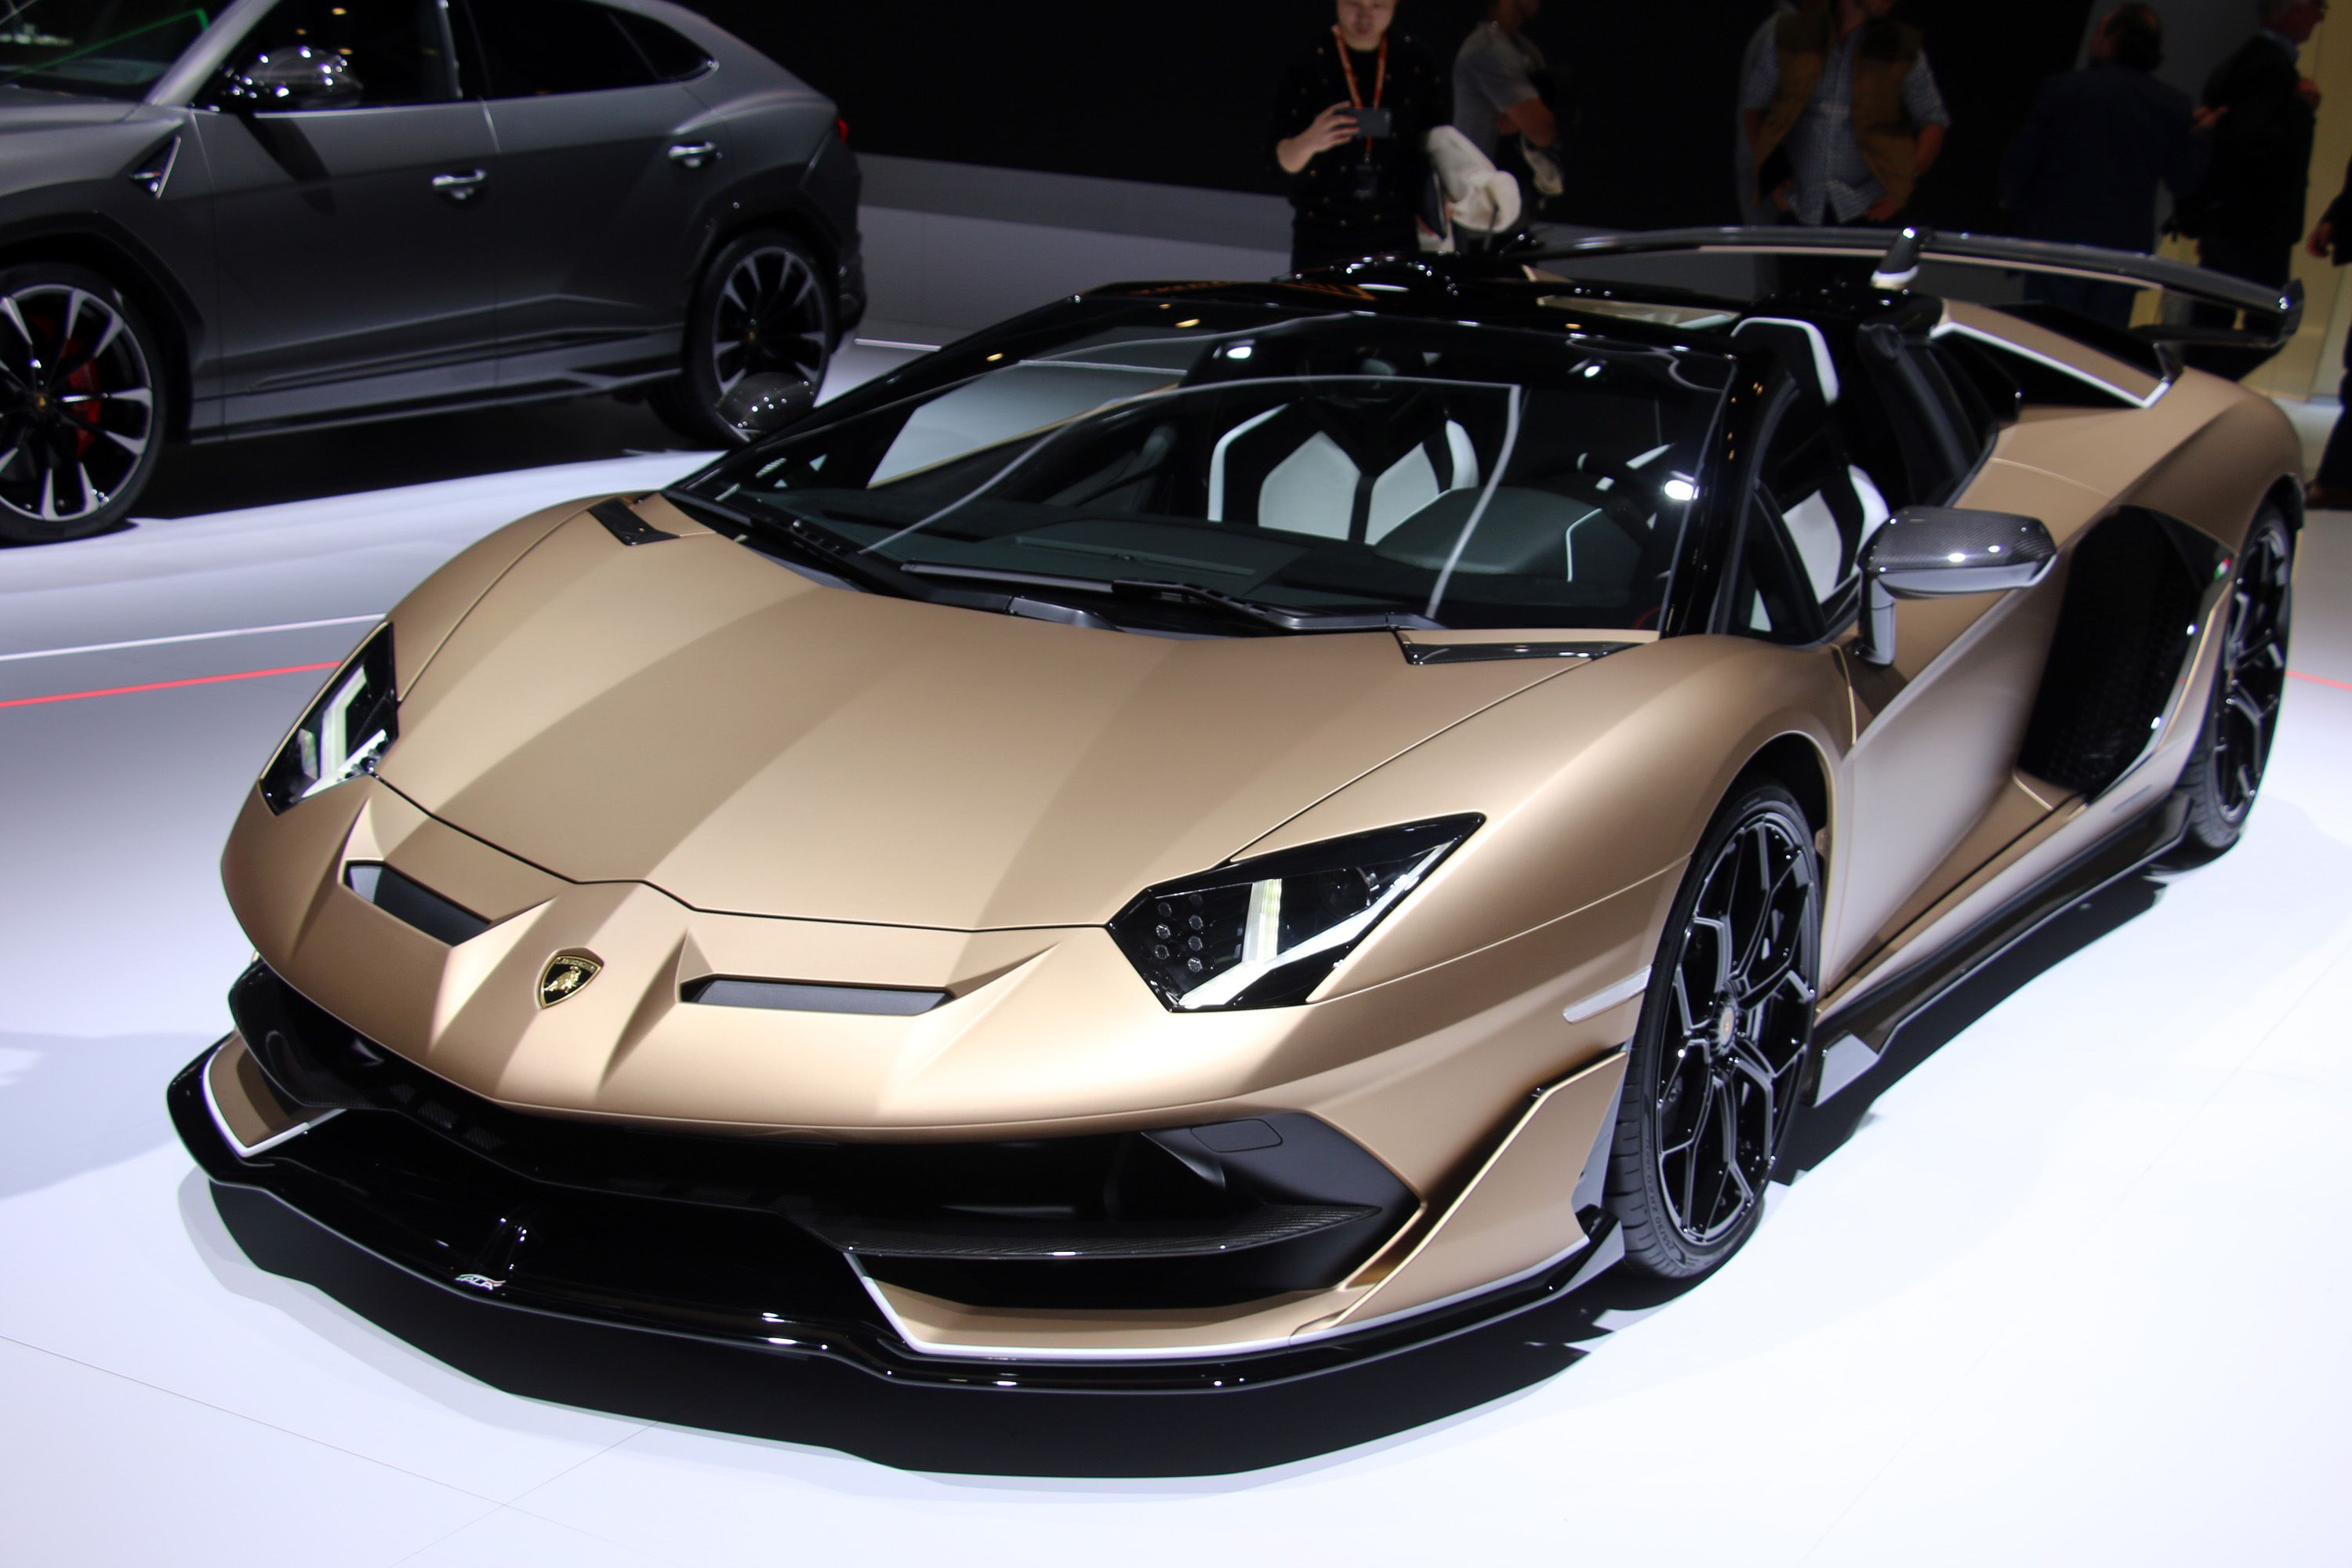 The Next Aventador Will Have a Naturally Aspirated V-12 and Supercapacitors